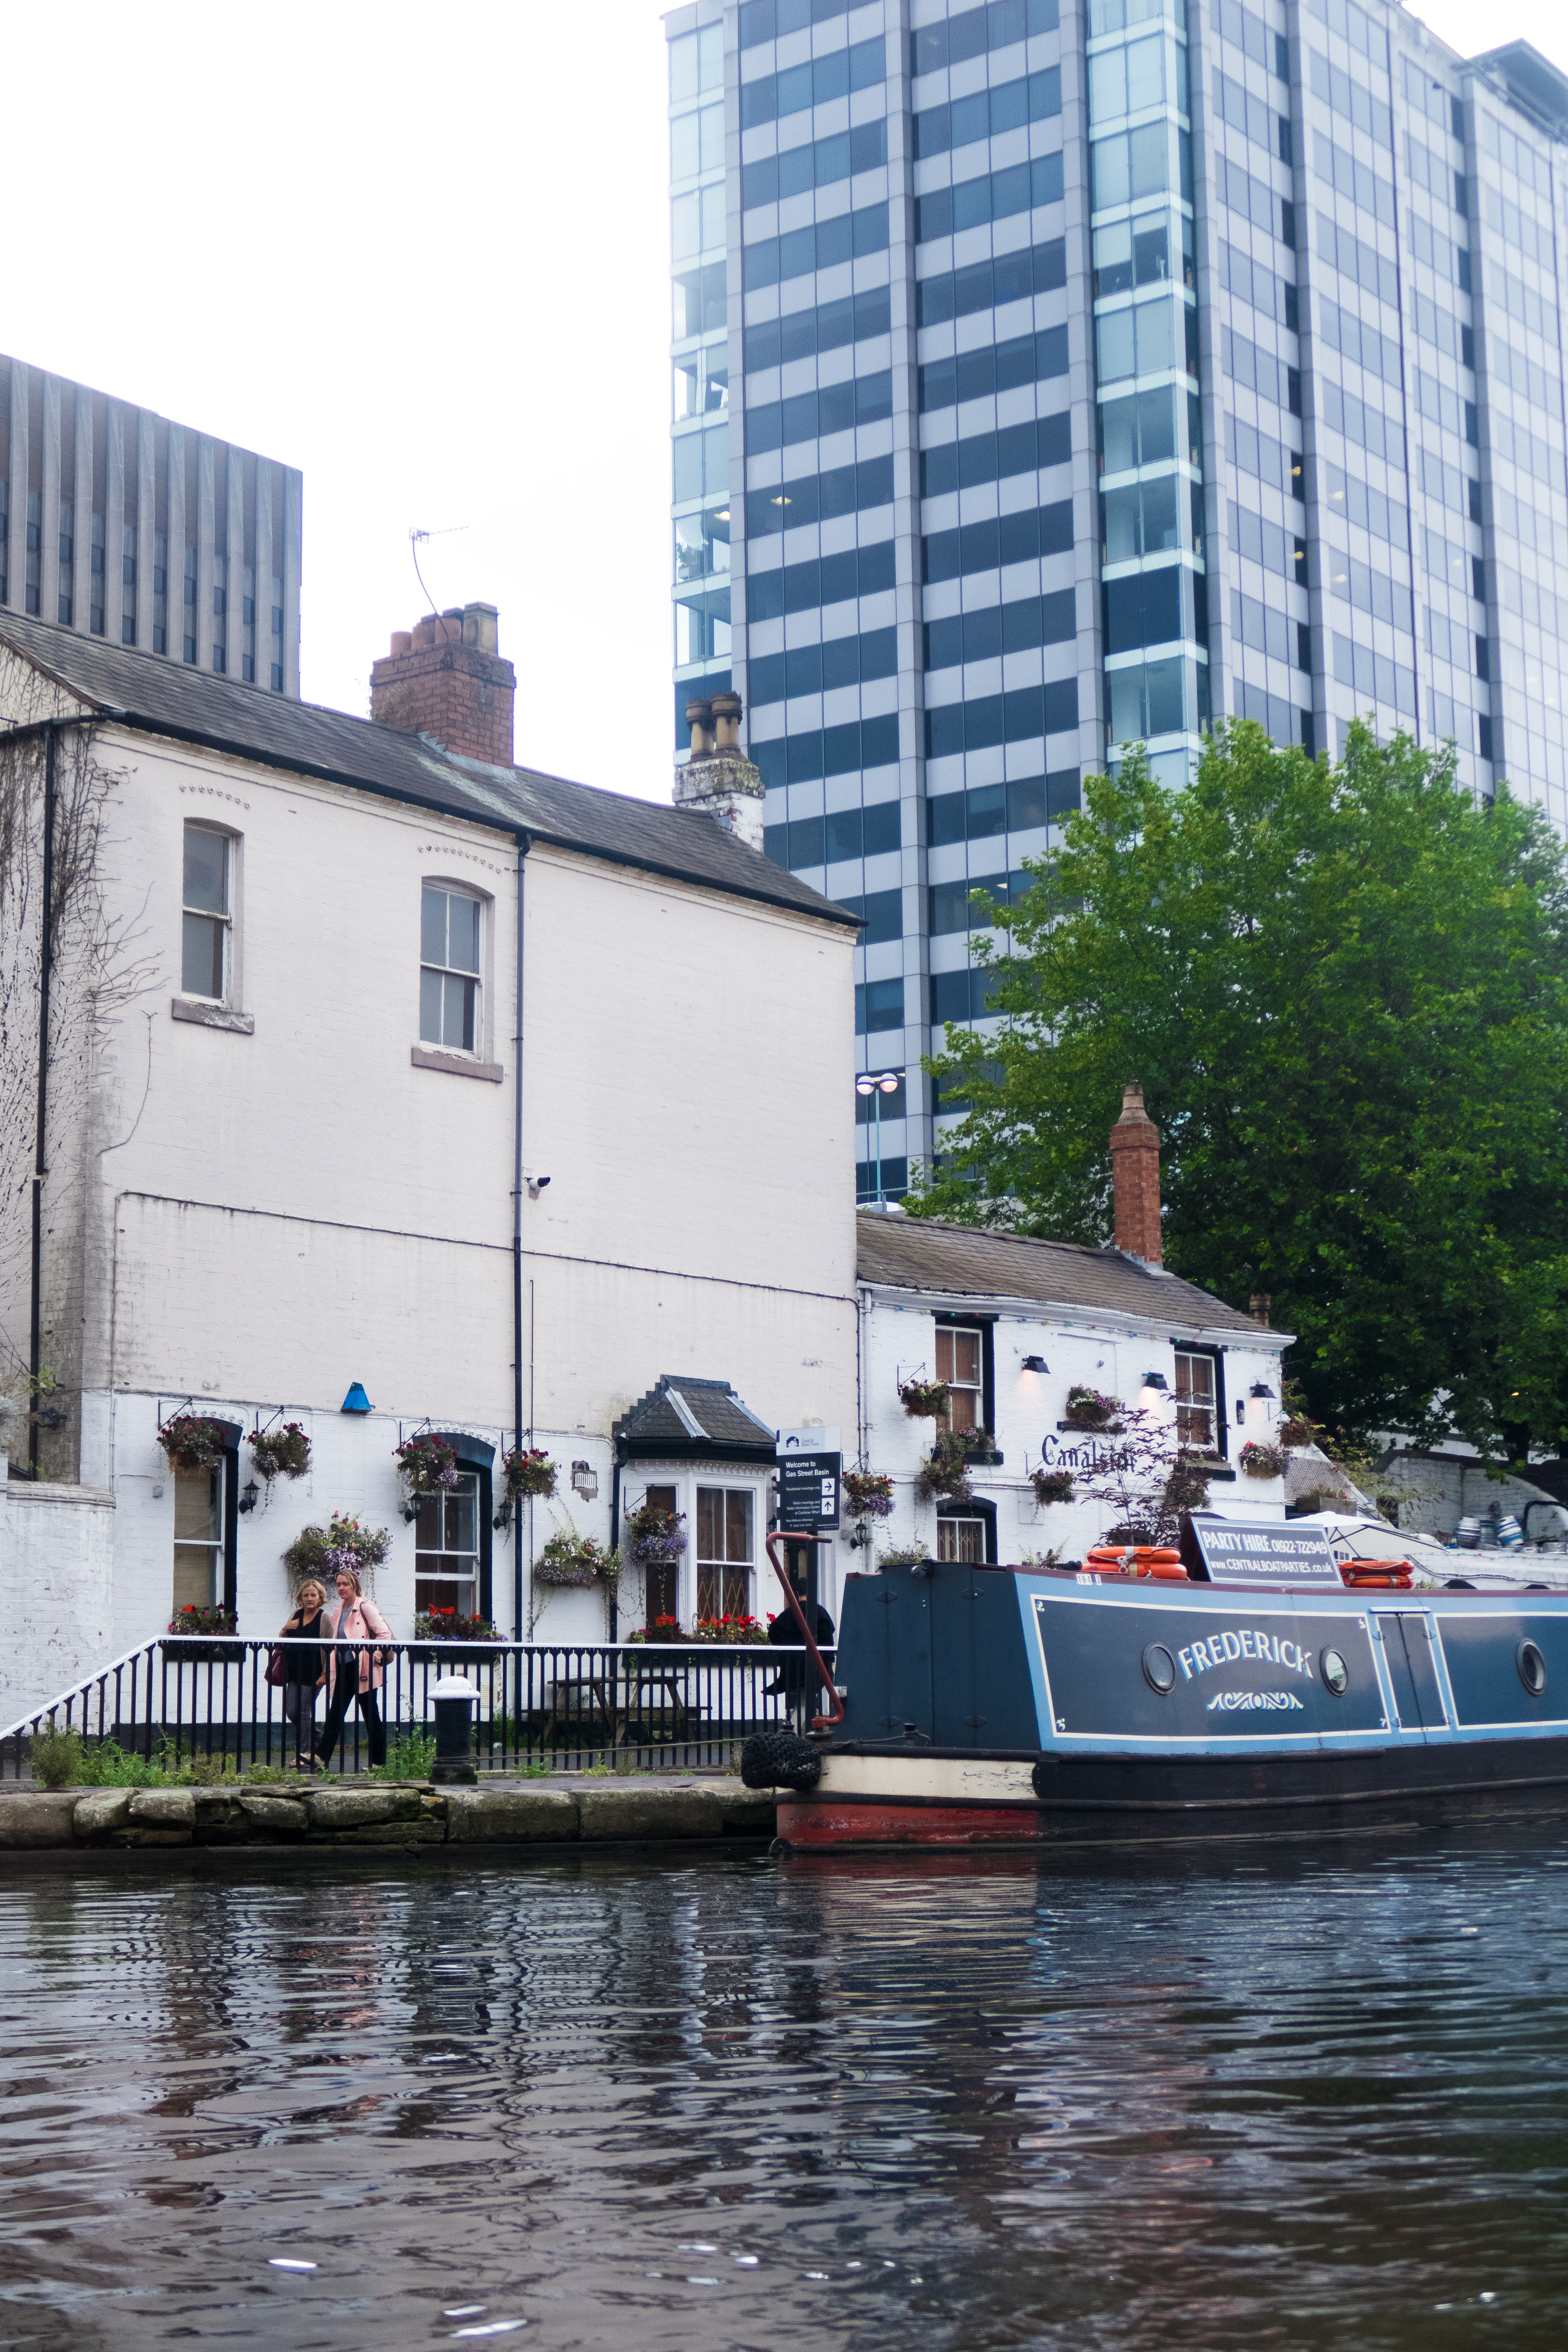 The Canal House, Birmingham